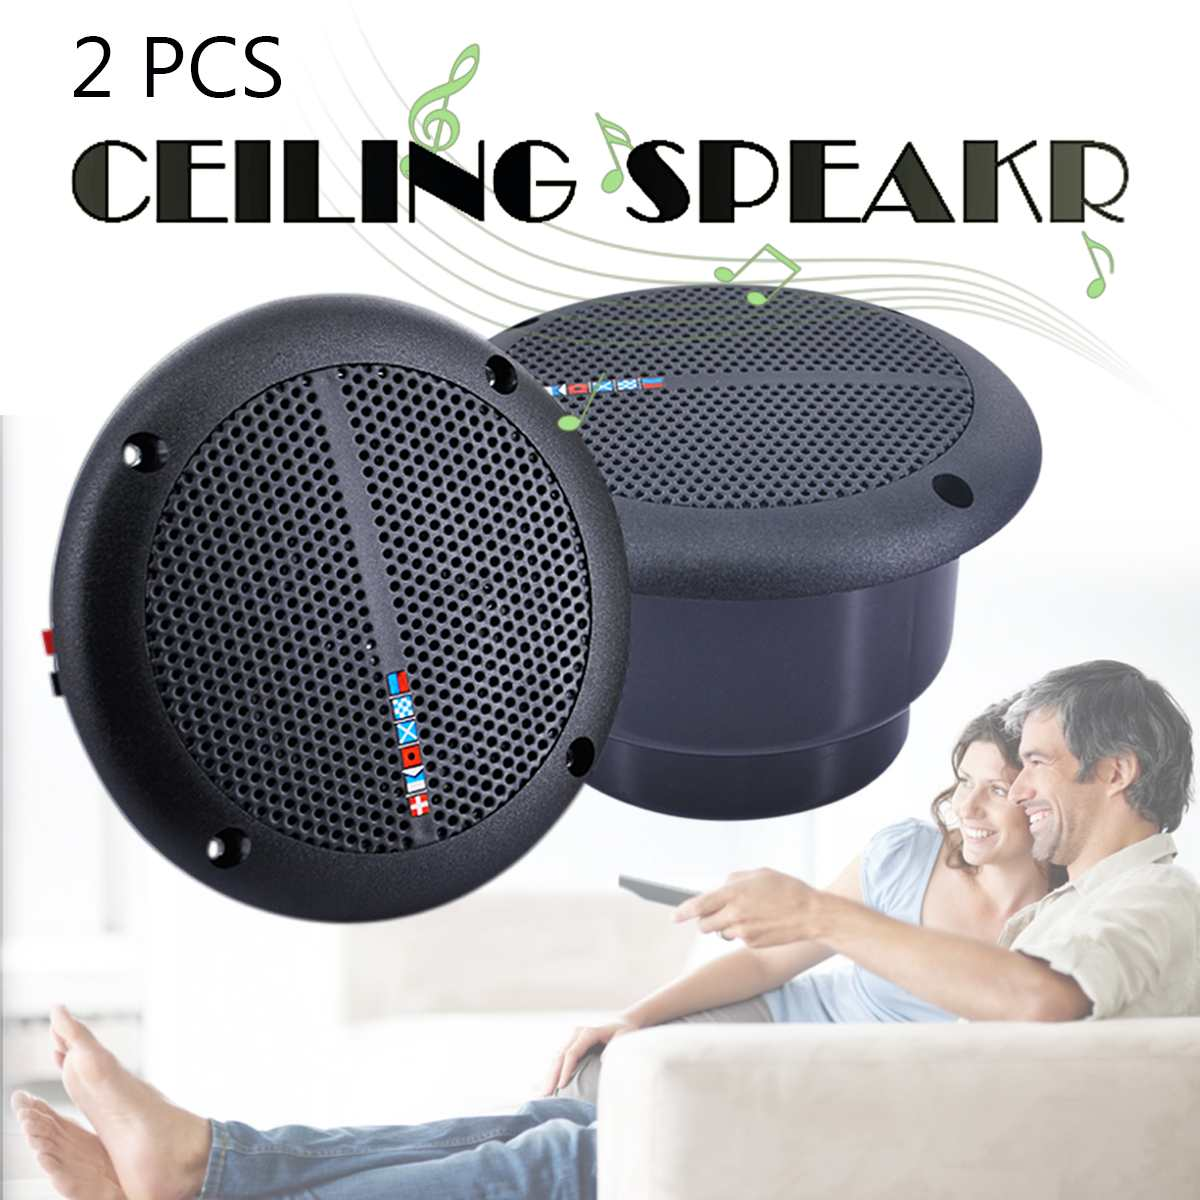 2pcs ceiling speaker loudspeakers amplifier waterproof - Waterproof sound system for bathroom ...